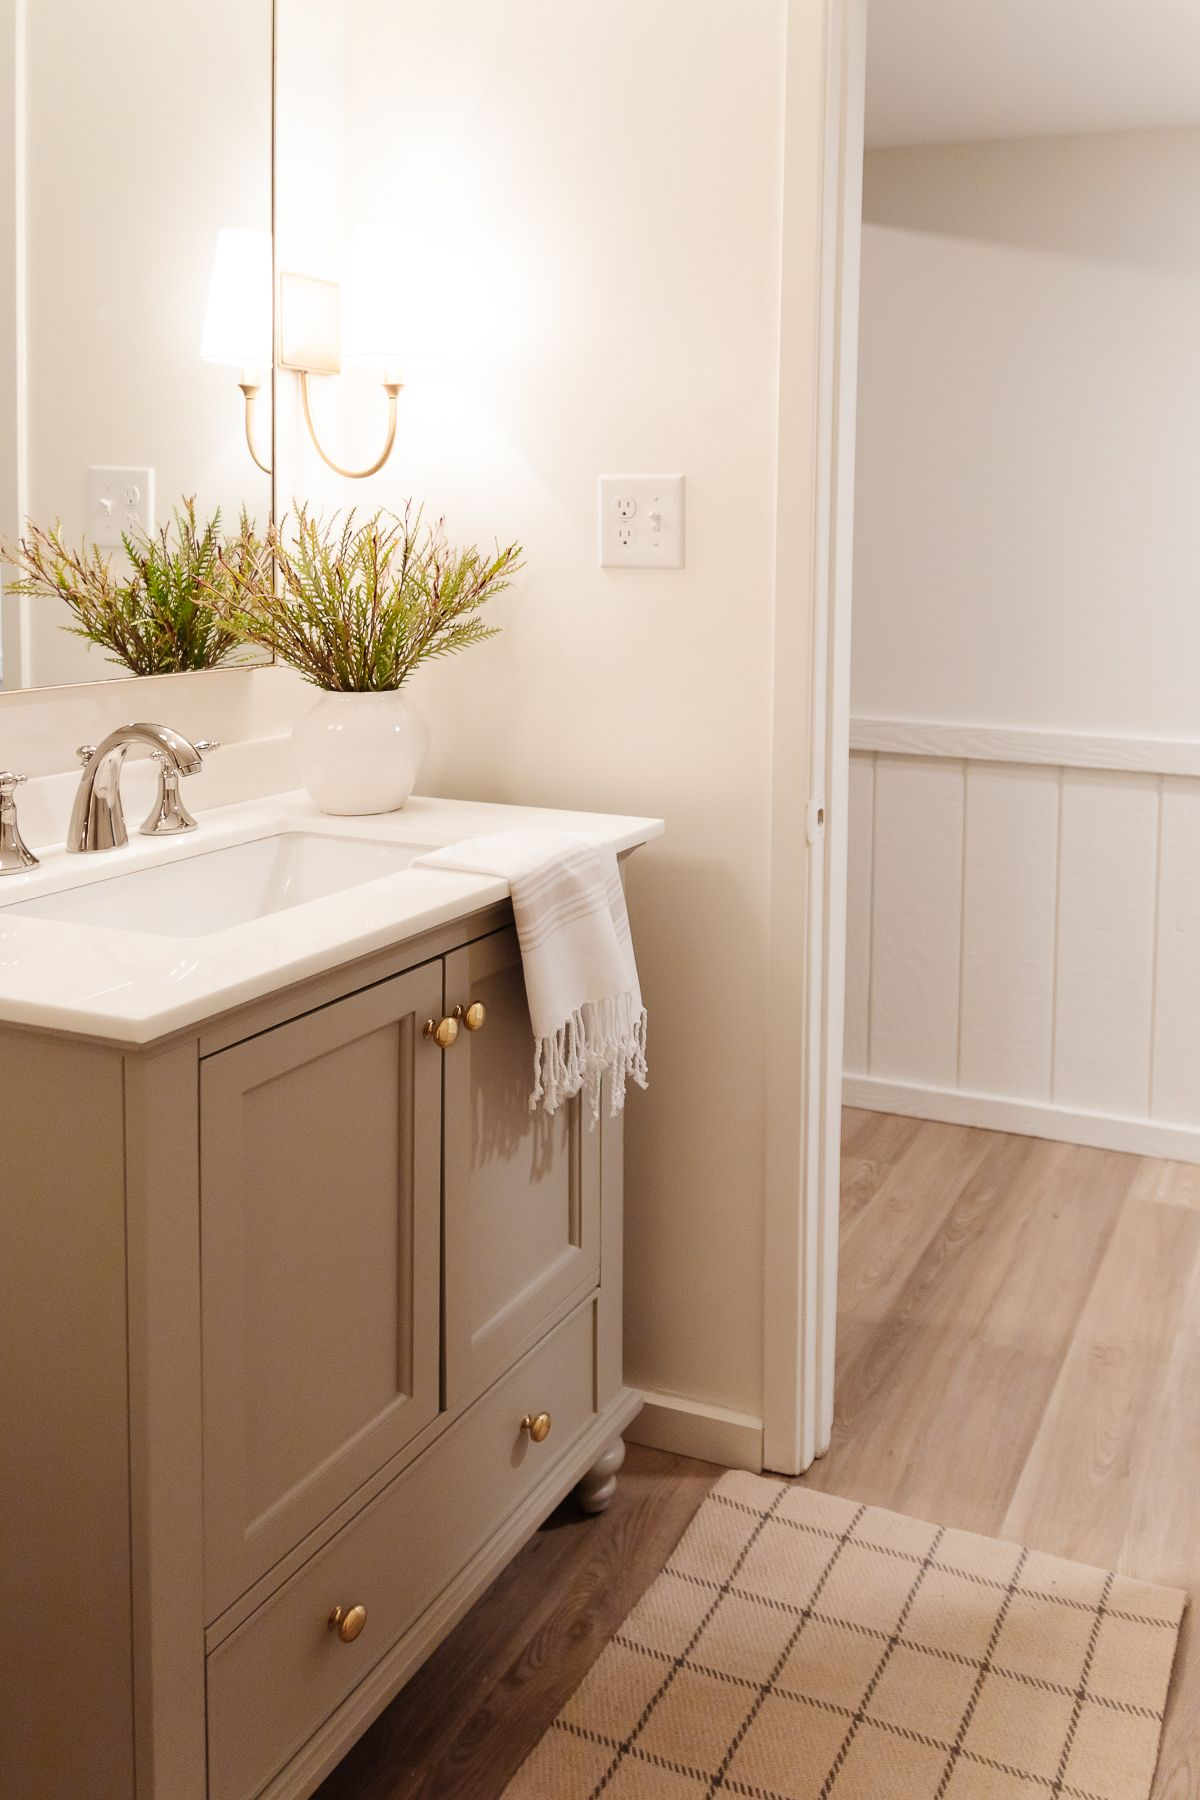 A small bathroom with gold sconces, greige vanity and cloudy white painted walls